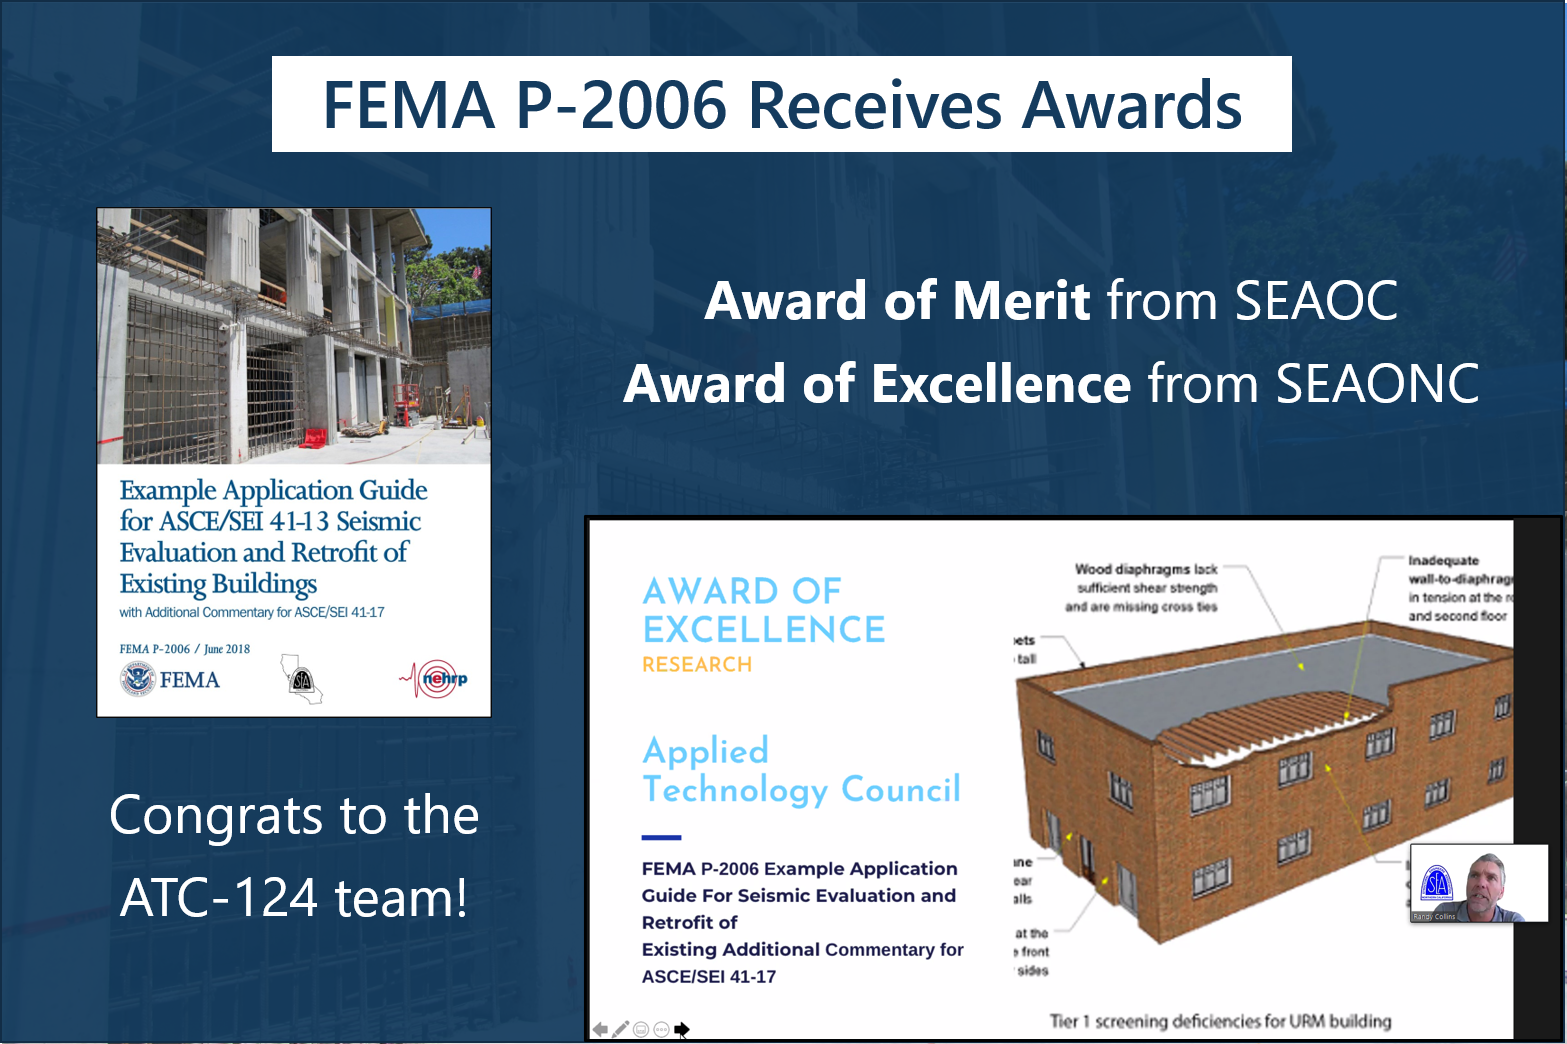 FEMA P-2006 Receives Awards